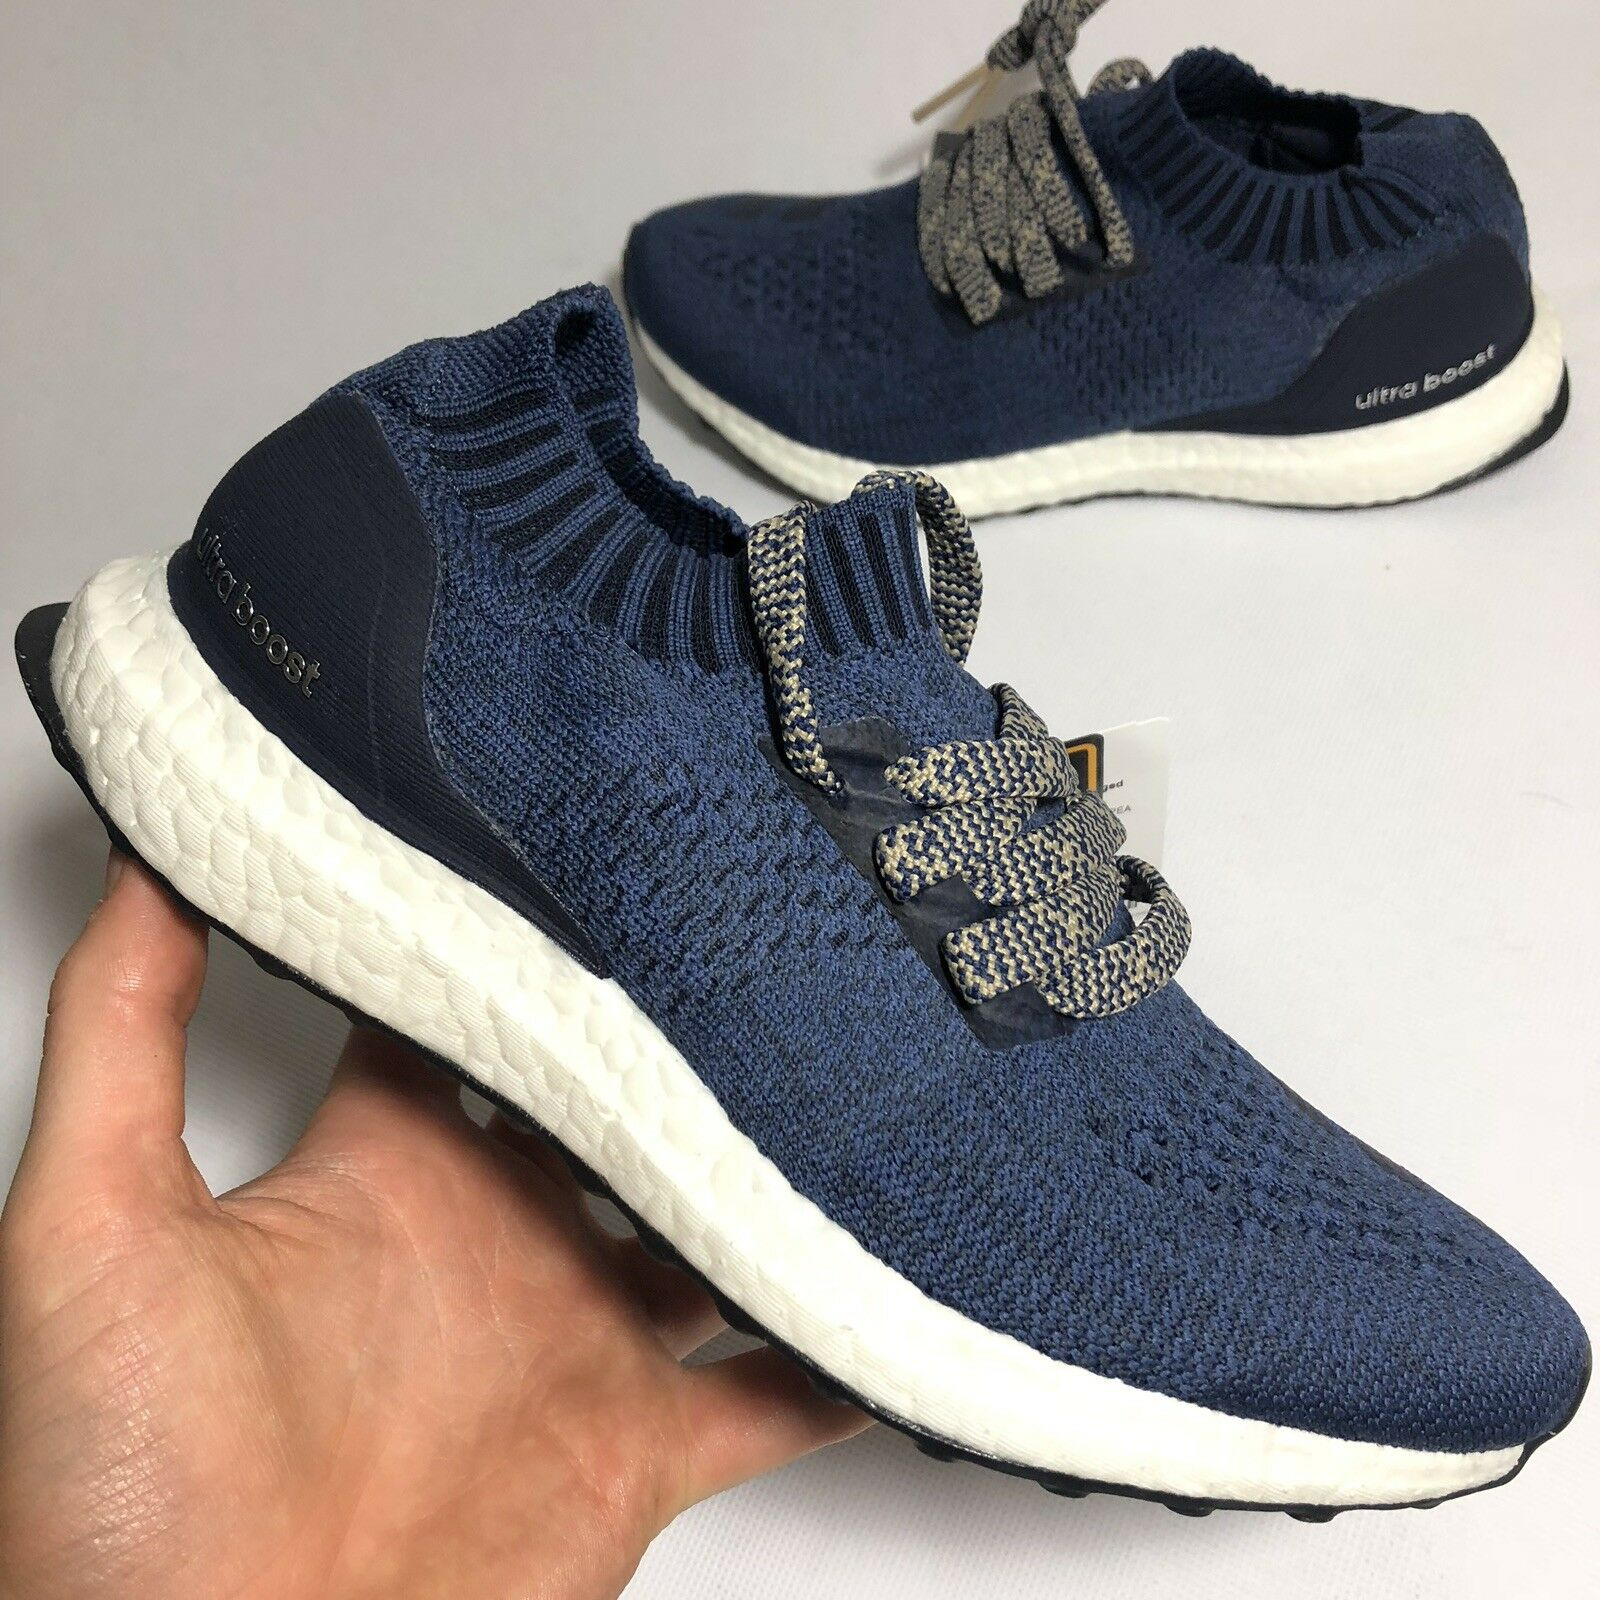 ADIDAS ULTRABOOST UNCAGED SIZE UK3.5 US4 DB1431